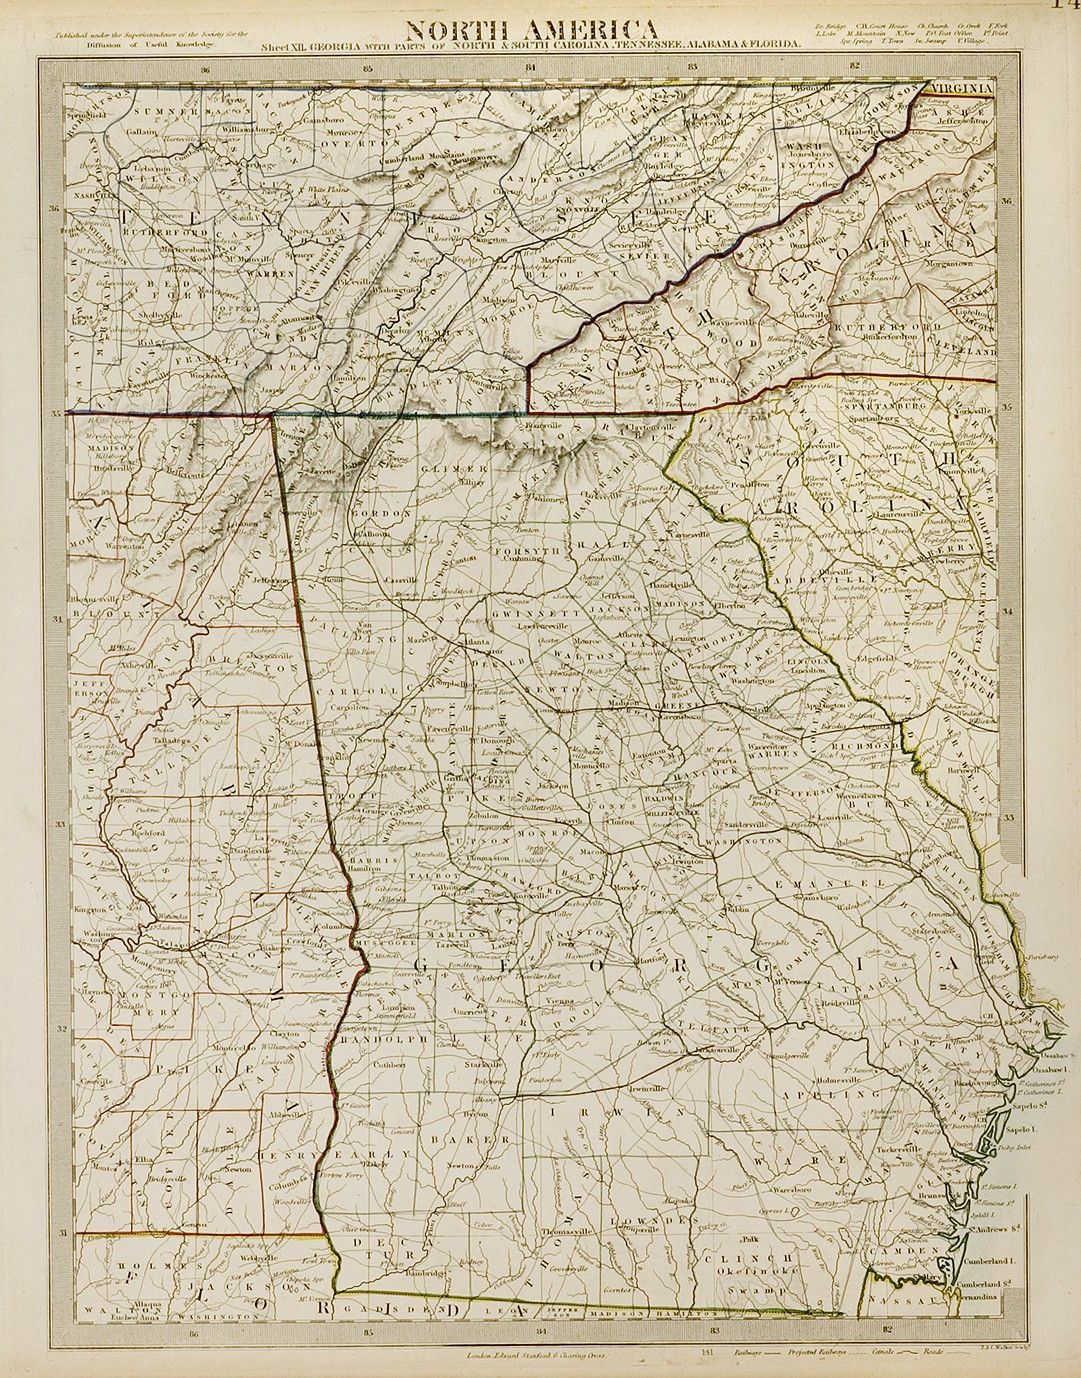 North America, Georgia with parts of North and South ... on ky and tn, map of alabama and ms, map of kentucky and tenn border, map of florida georgia and tennessee, 1940 map nashville tn, map of carolina's and georgia, map florida to tennessee, map of alabama and ge, map of florida alabama border, map of alabama and surrounding states, map of north alabama and tennessee, map of tennessee alabama border, map of haleyville alabama,